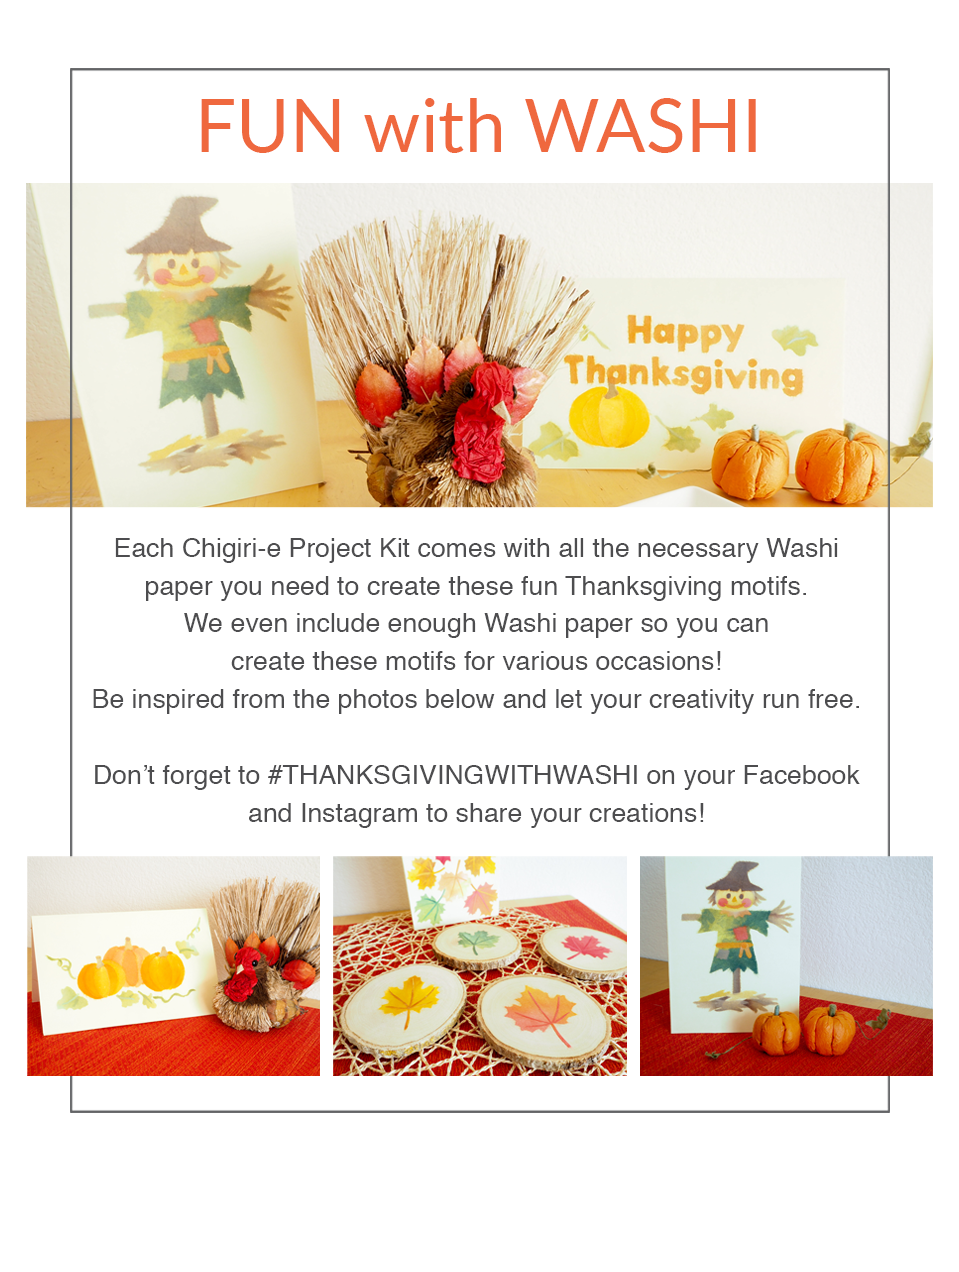 FUN with WASHI | Each Chigiri-e Project Kit comes with all the necessary Washi paper you need to create these fun Thanksgiving motifs. We even include enough Washi paper so you can create these motifs for various occasions! Be inspired from the photos below and let your creativity run free. Don't forget to #THANKSGIVINGWITHWASHI on your Facebook and Instagram to share your creations!